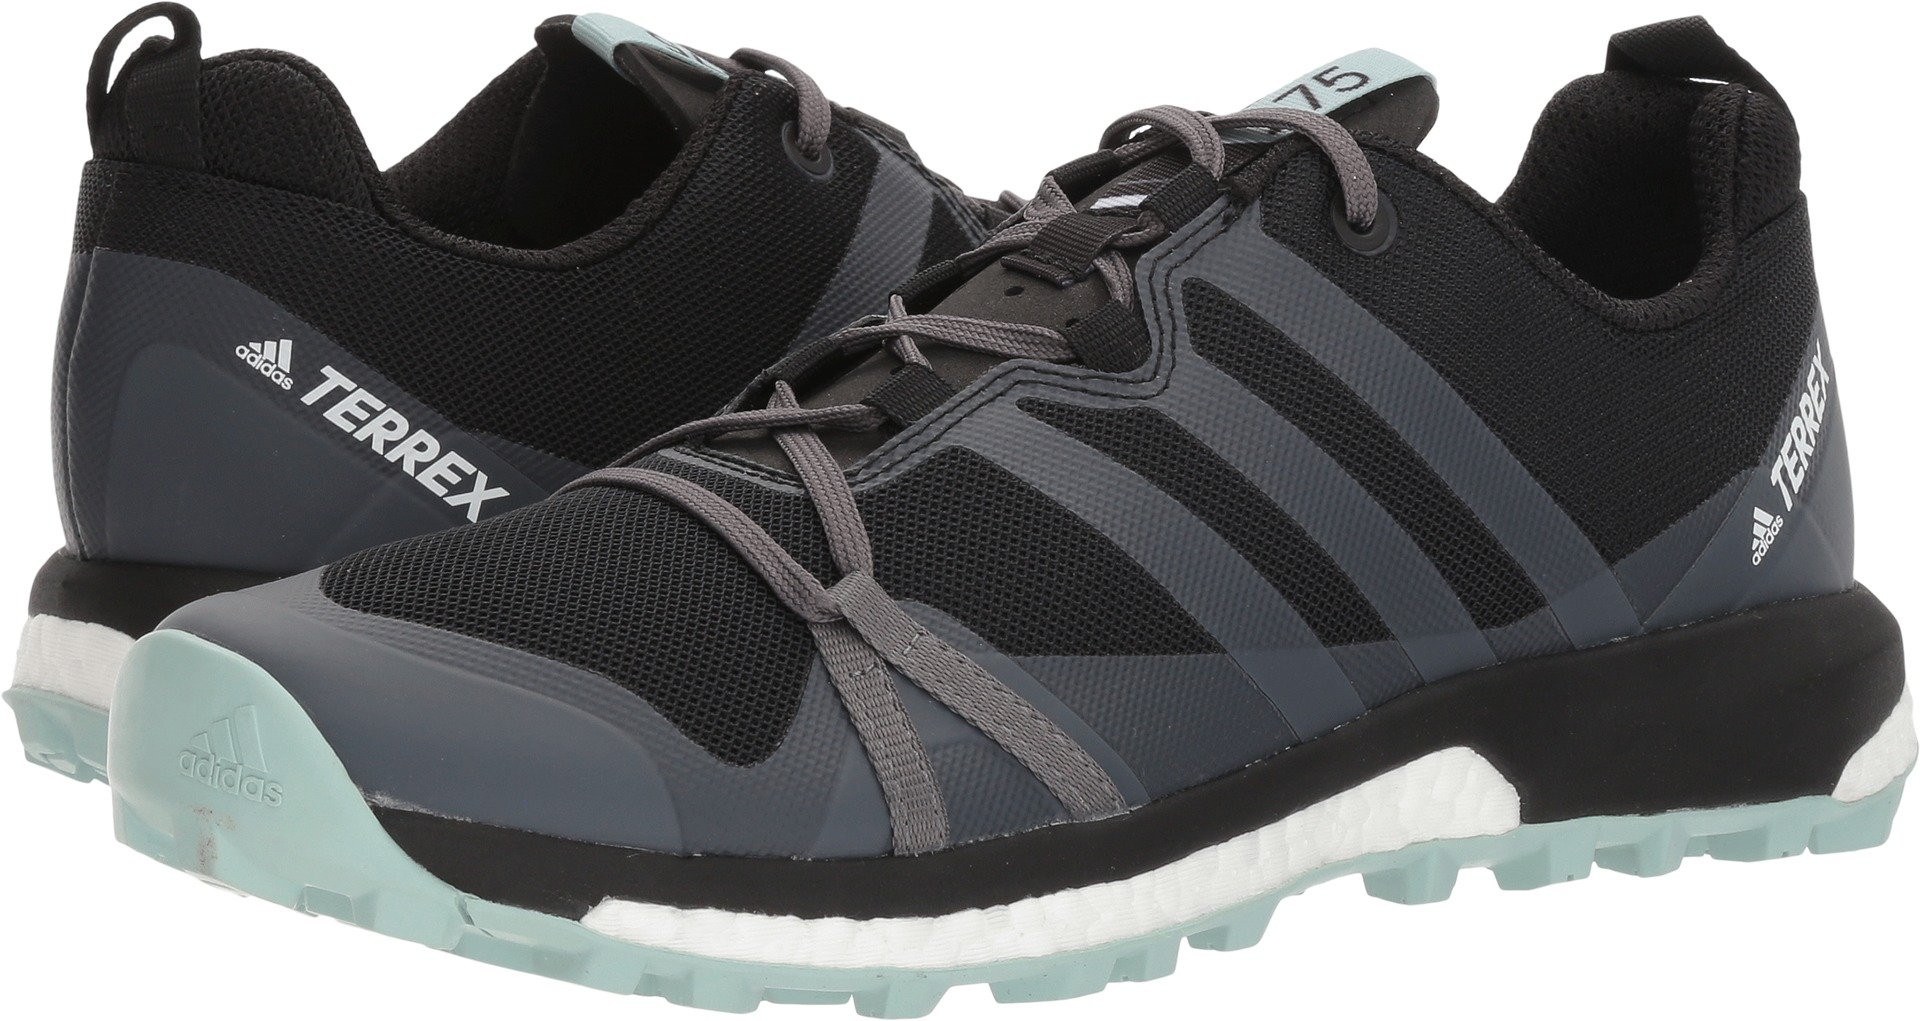 adidas Sport Performance Women's Terrex Agravic W Sneakers, Black, 10 M